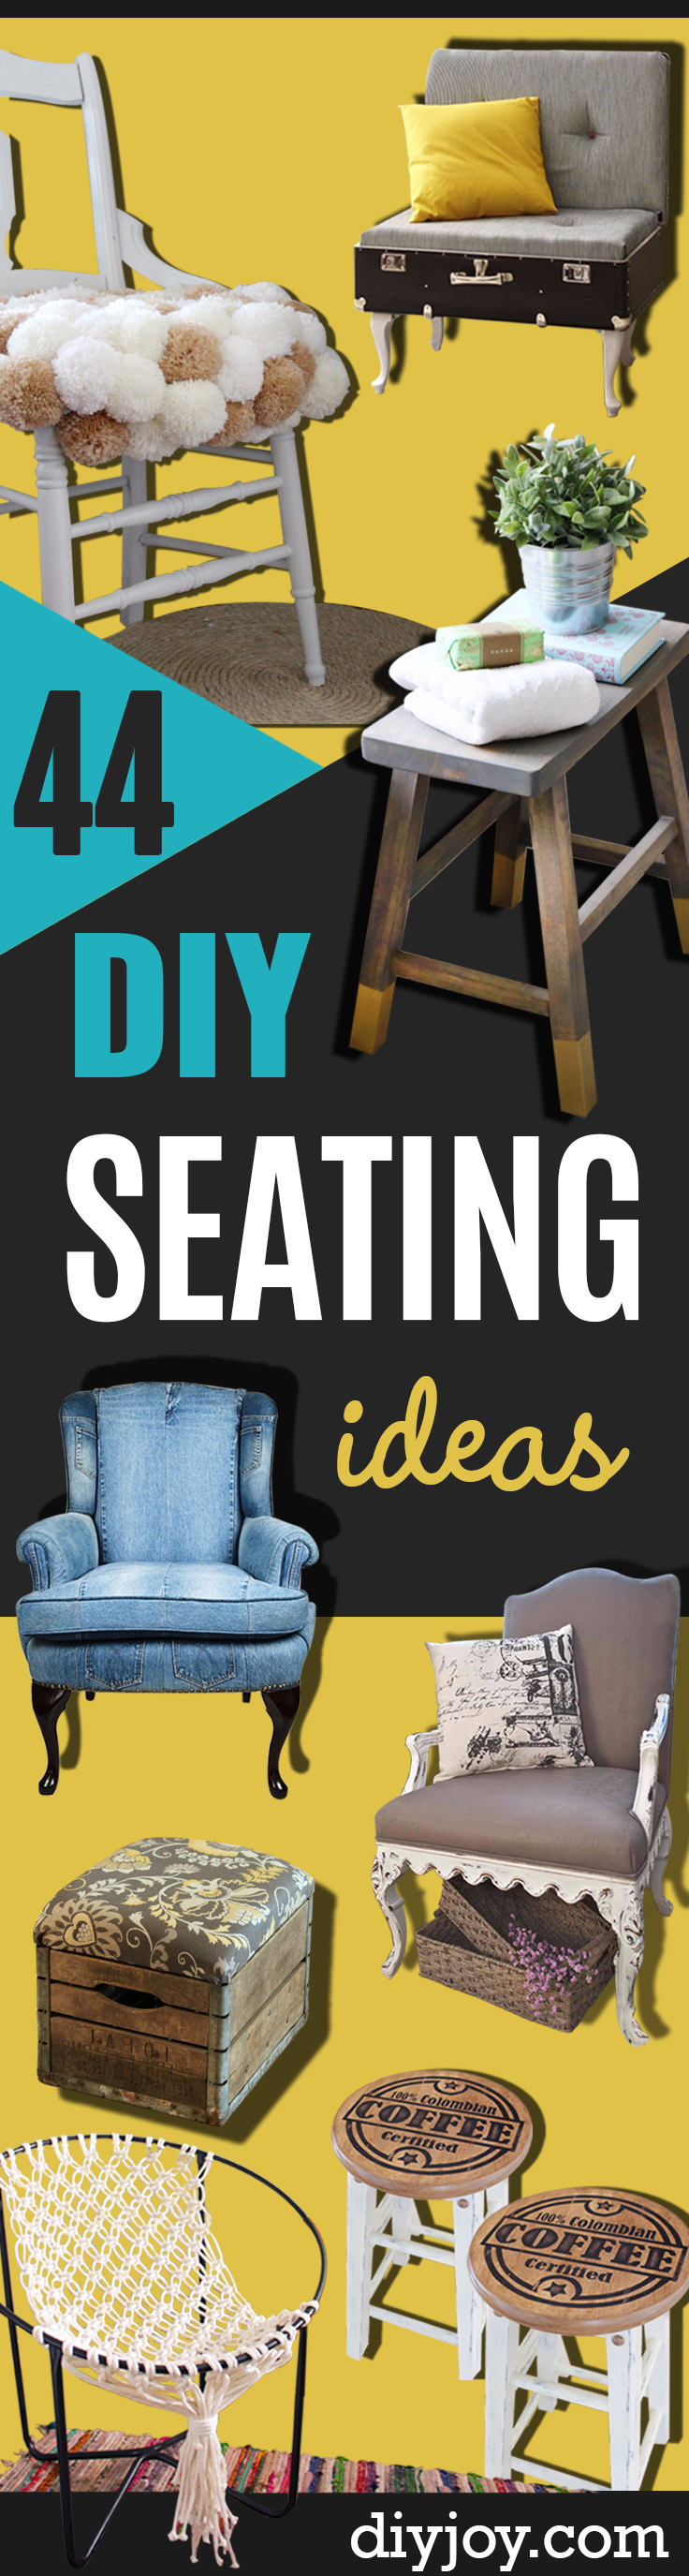 DIY Seating Ideas - Creative Indoor Furniture, Chairs and Easy Seat Projects for Living Room, Bedroom, Dorm and Kids Room. Cheap Projects for those On A Budget. Tutorials for Cushions, No Sew Covers and Benches